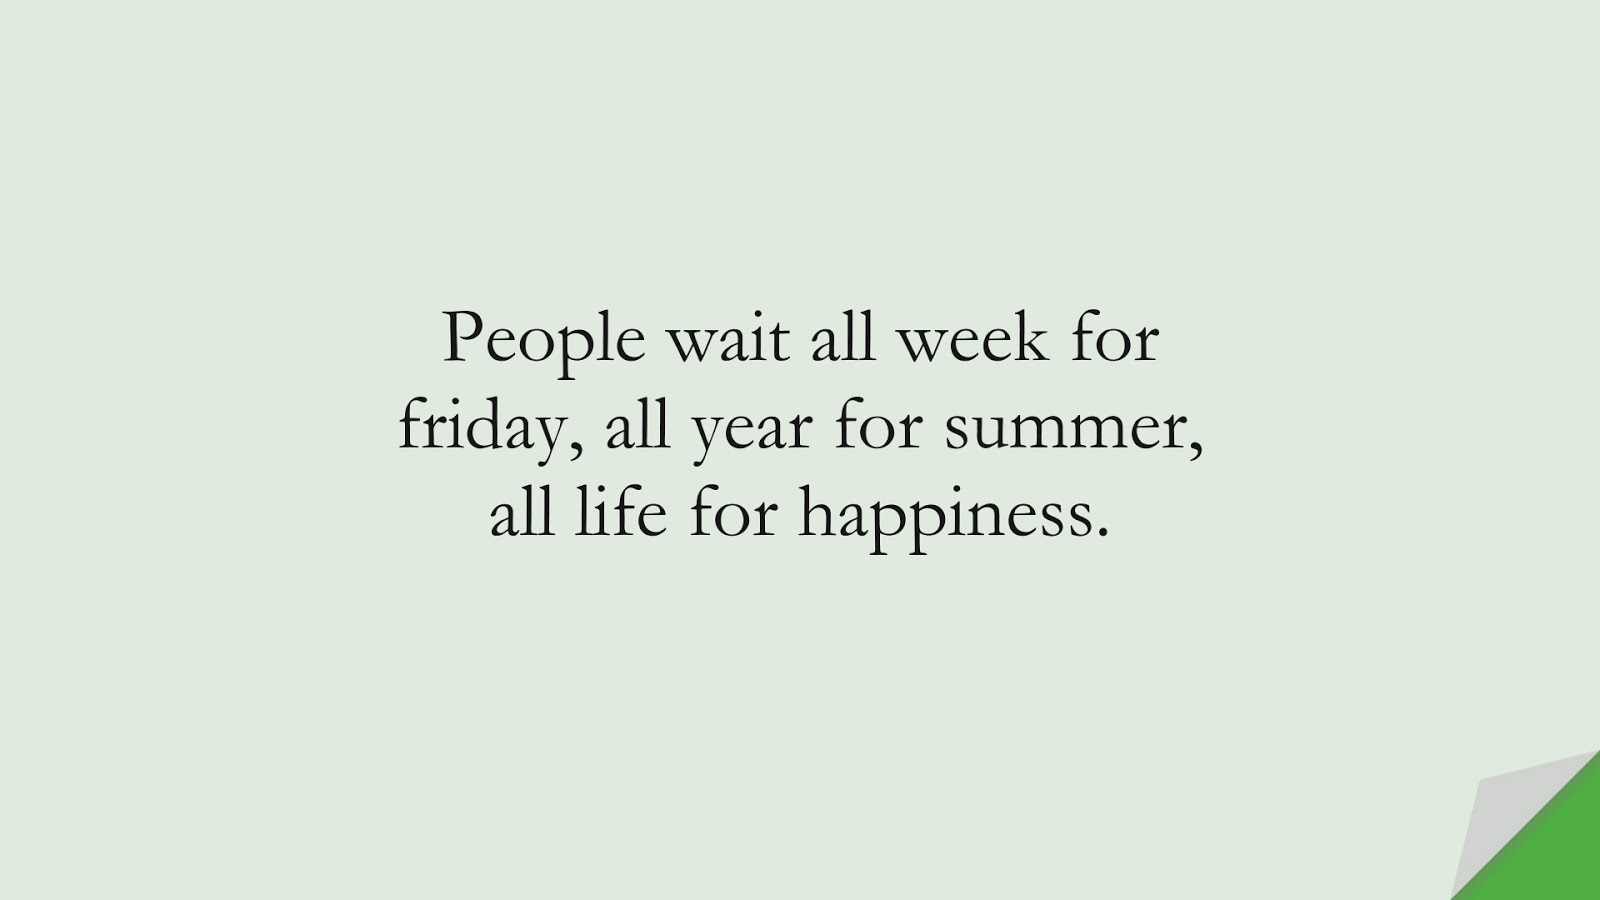 People wait all week for friday, all year for summer, all life for happiness.FALSE